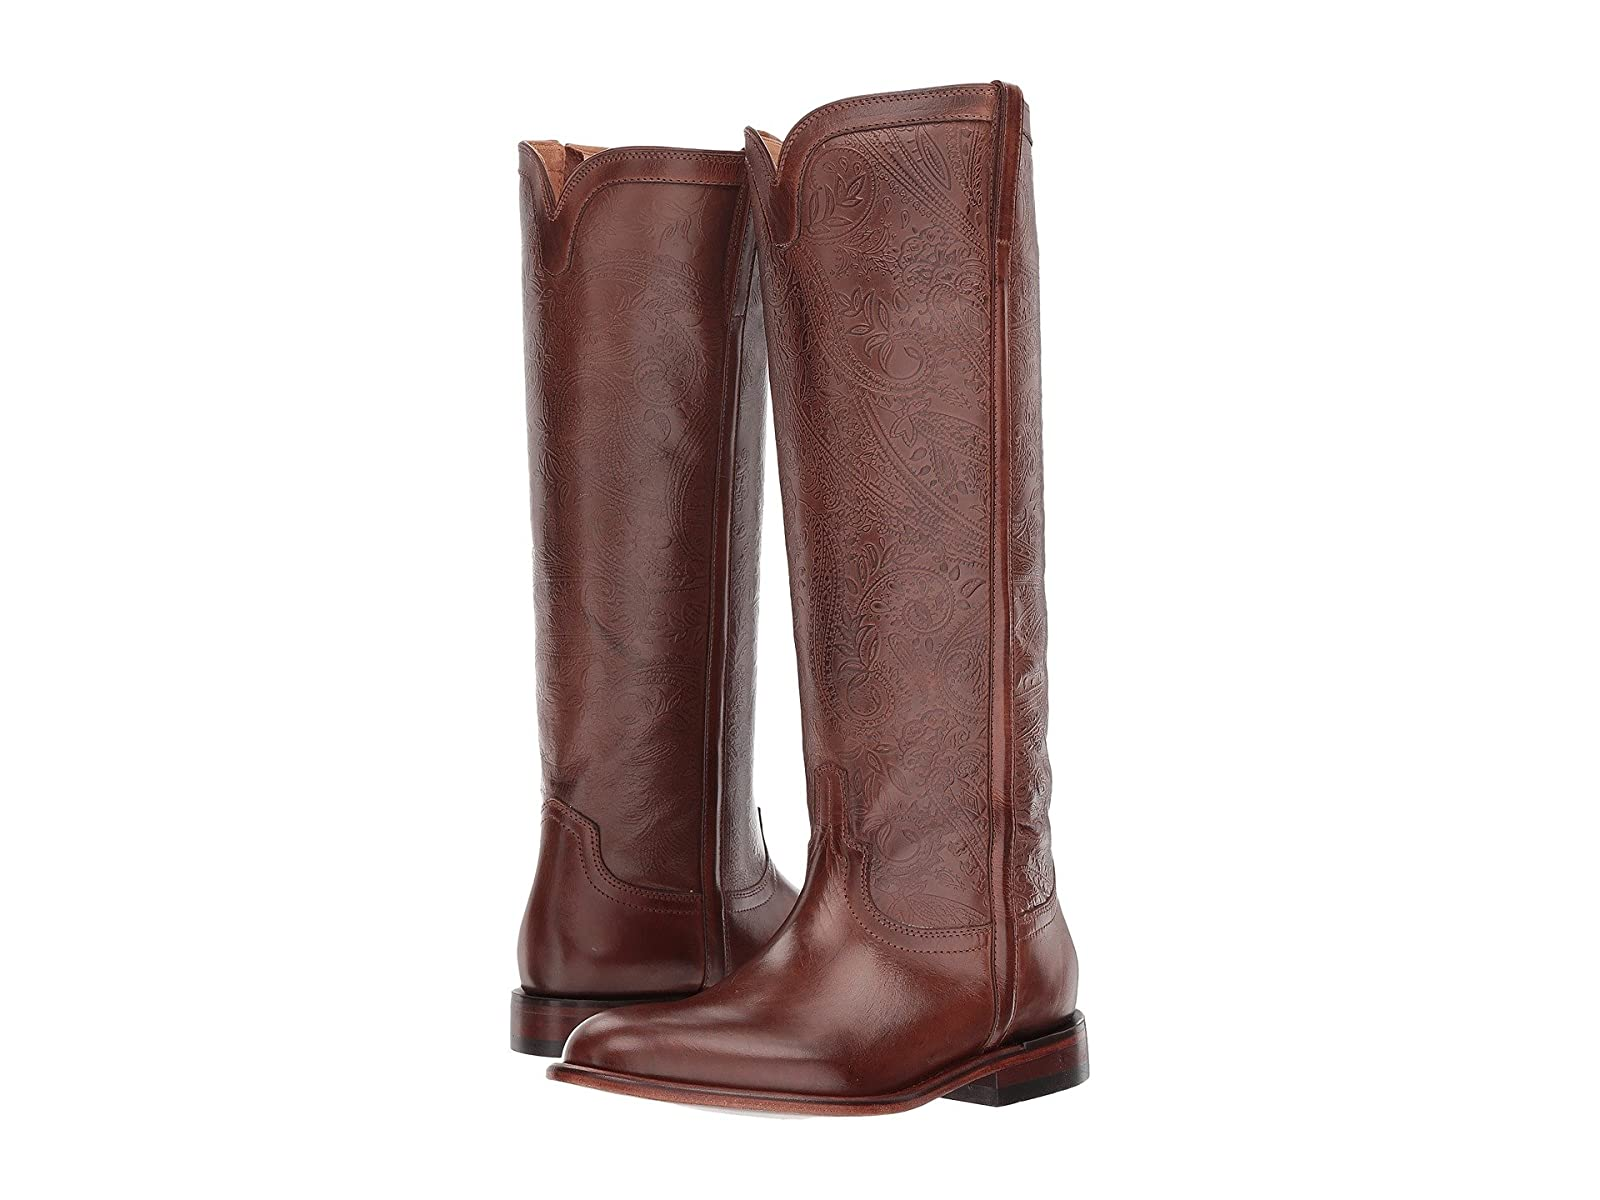 Lucchese FrancescaAffordable and distinctive shoes